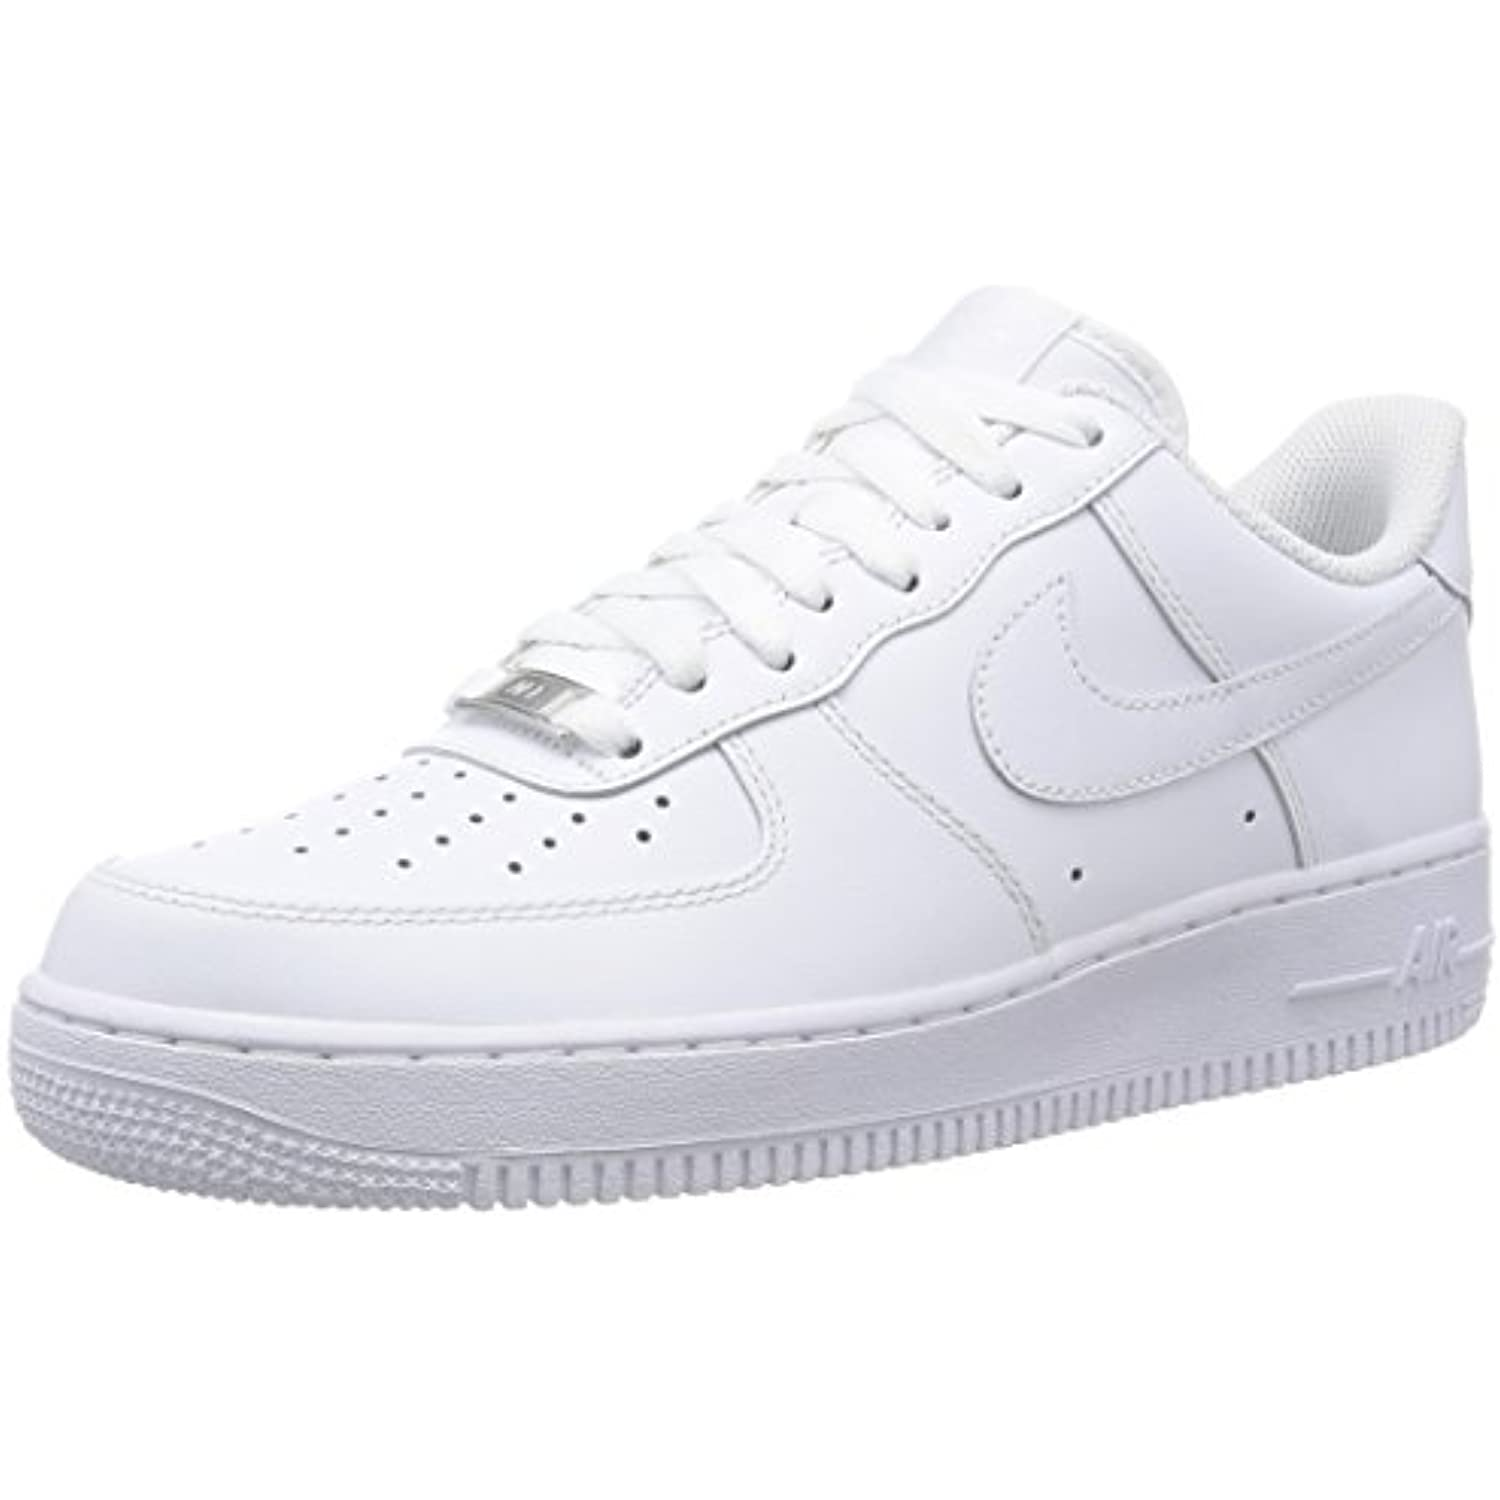 NIKE Air Force 1 '07, Baskets Basses Basses Basses Homme - B000RPIPY6 - 2147b0